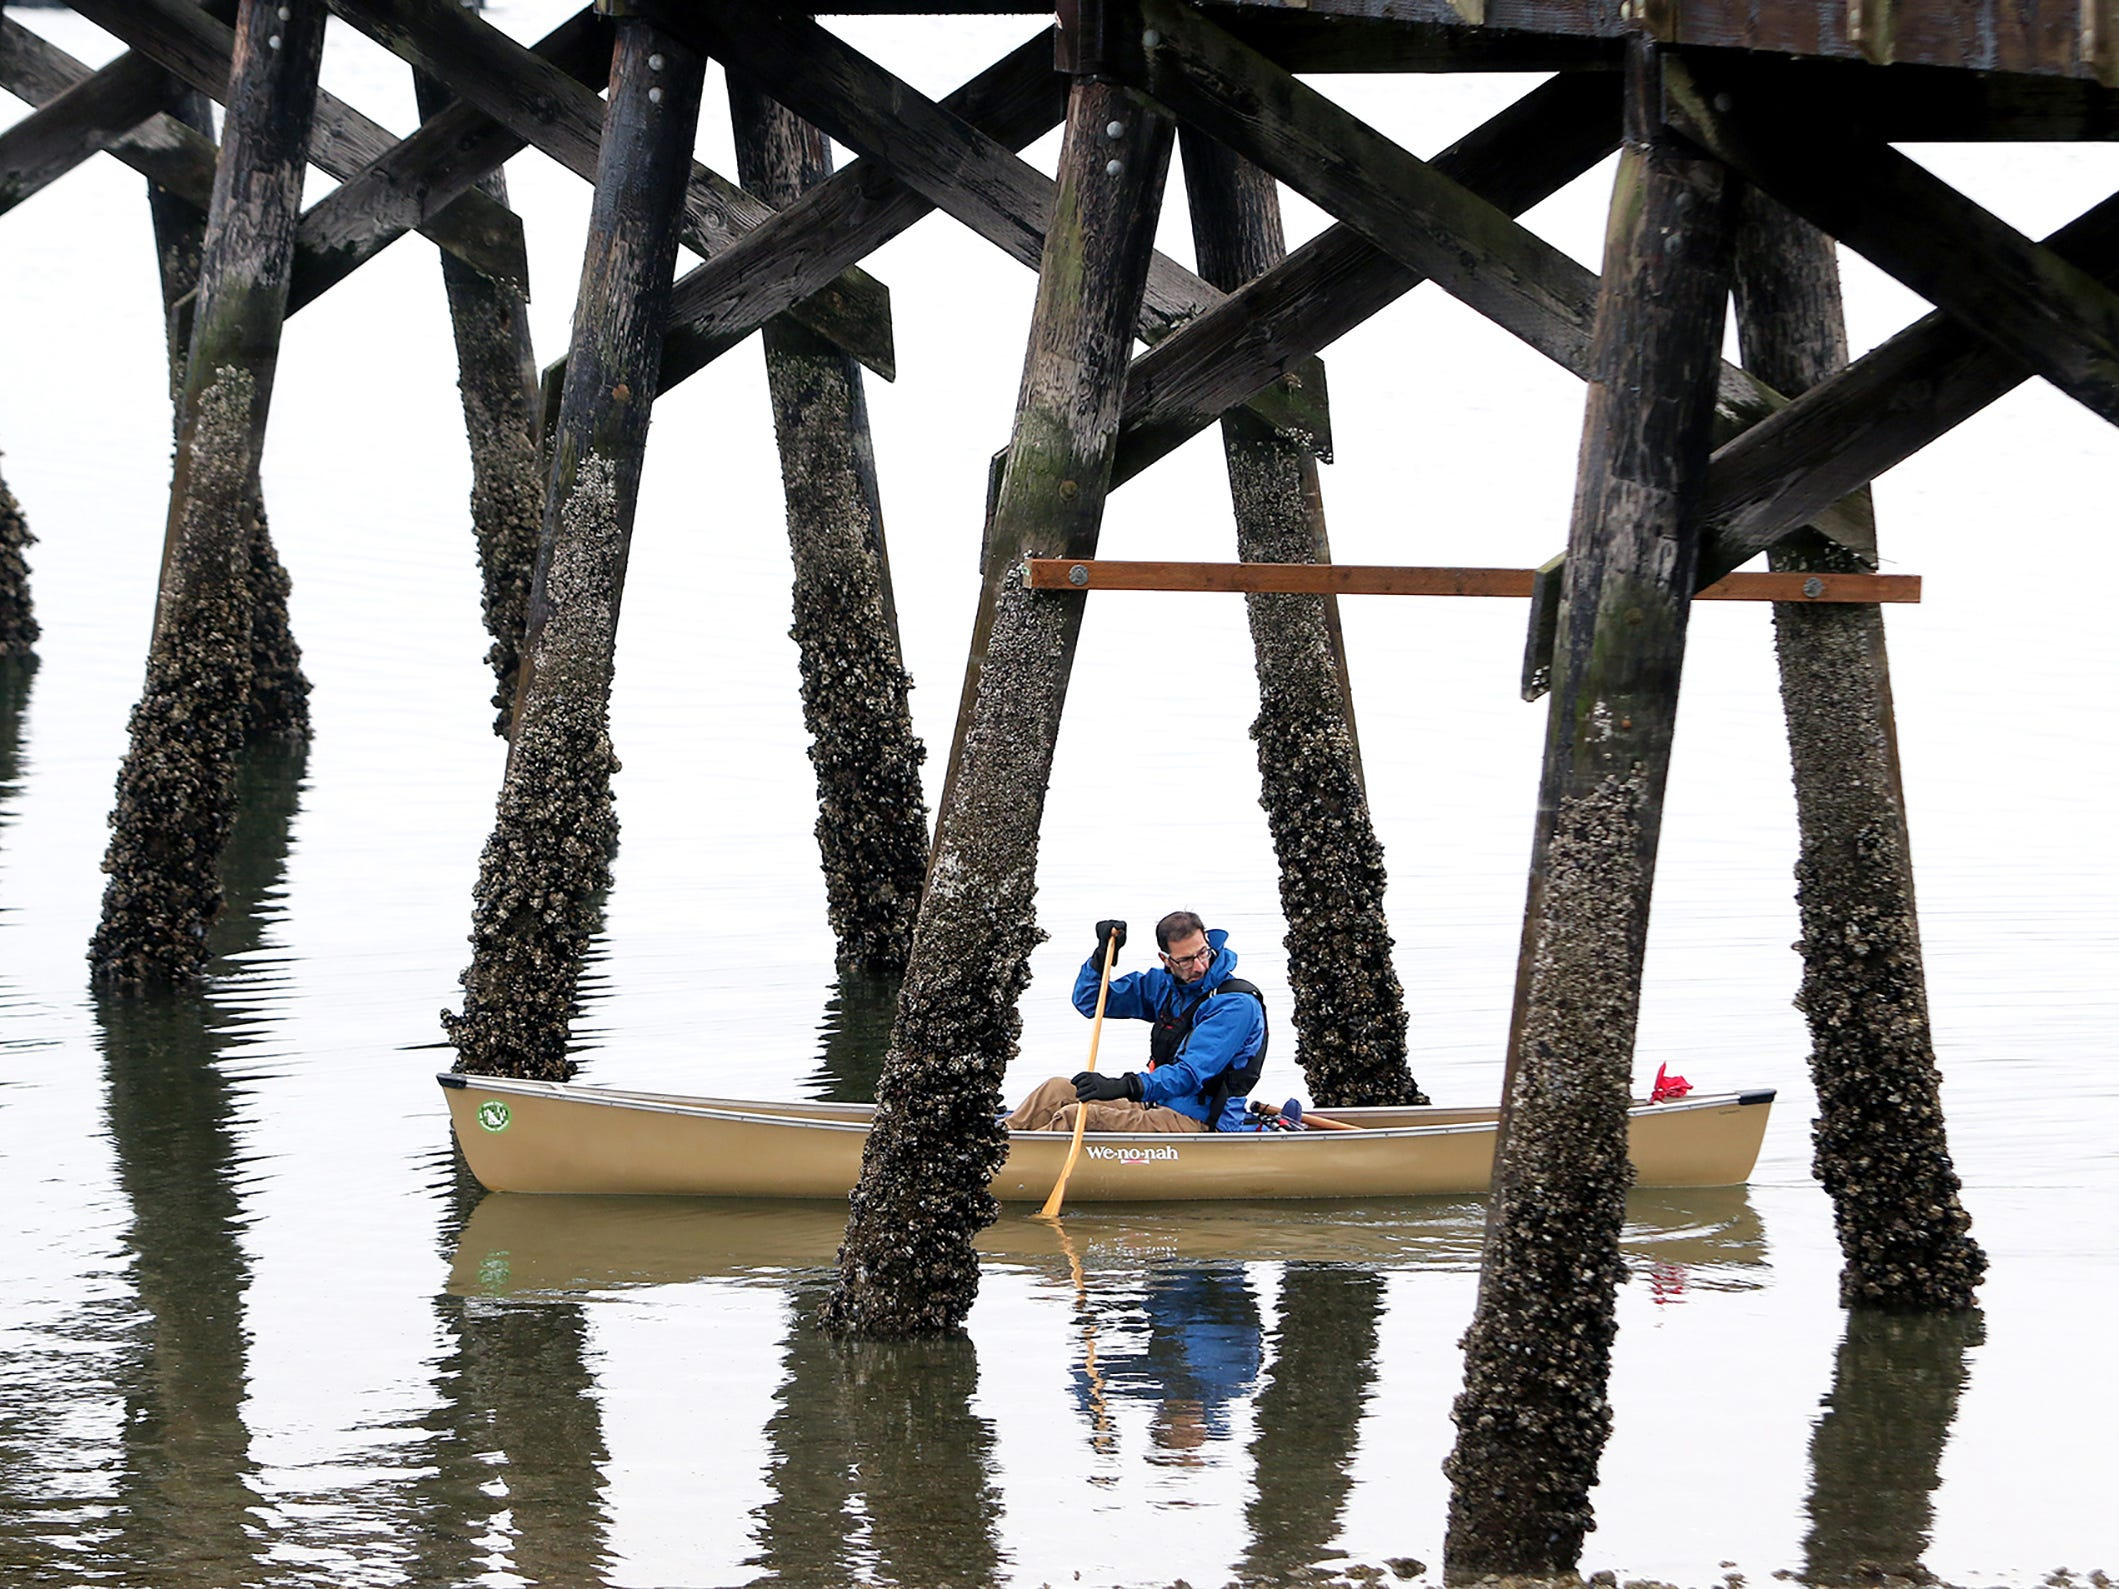 A canoeist goes under the Silverdale Waterfront Park Dock as the fog lifts on Saturday, October 20, 2018.